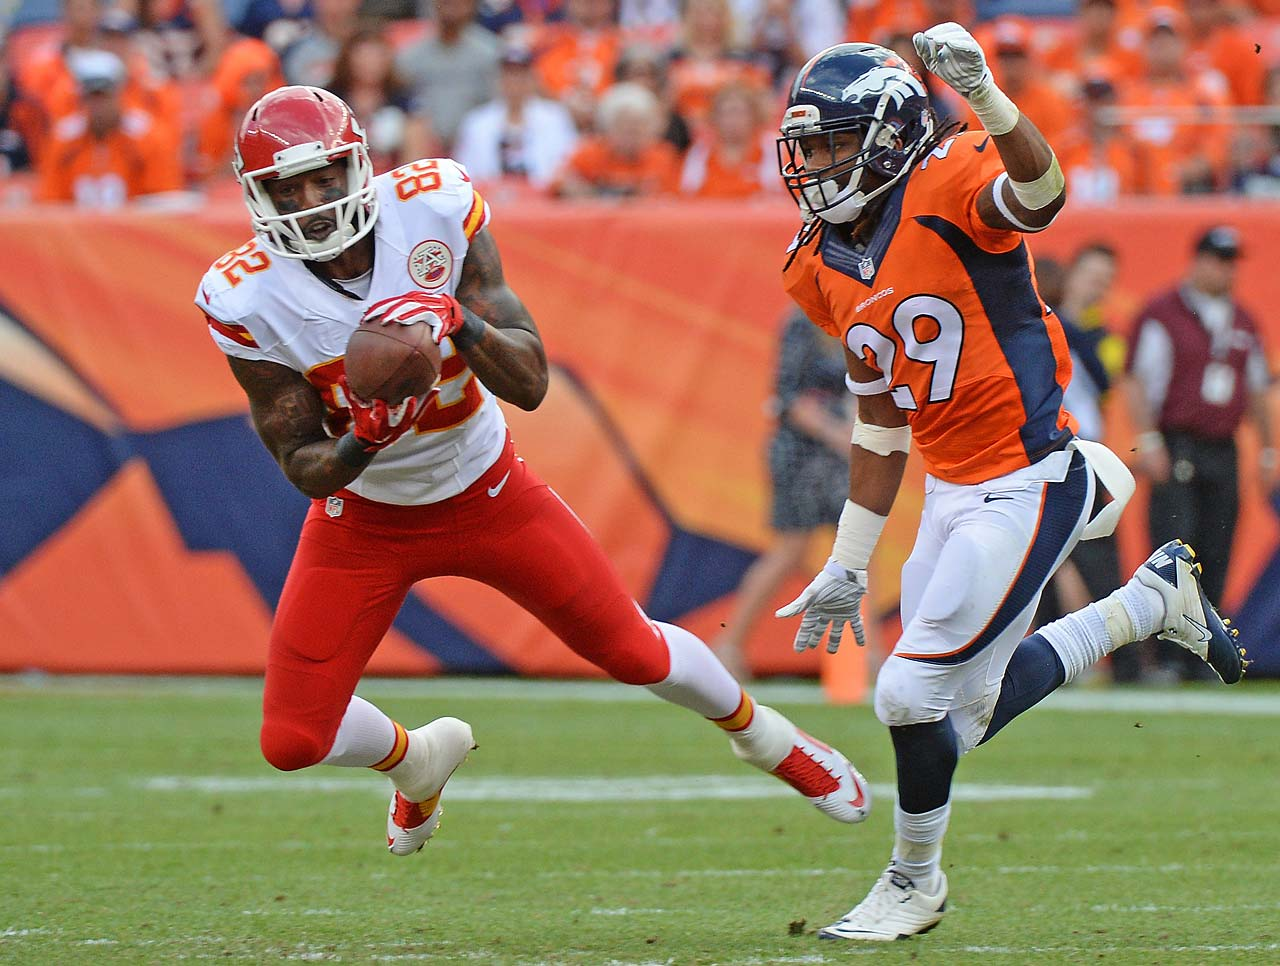 Back after his one-game suspension, Dwayne Bowe had only three catches (40 yards) in a loss to Denver.